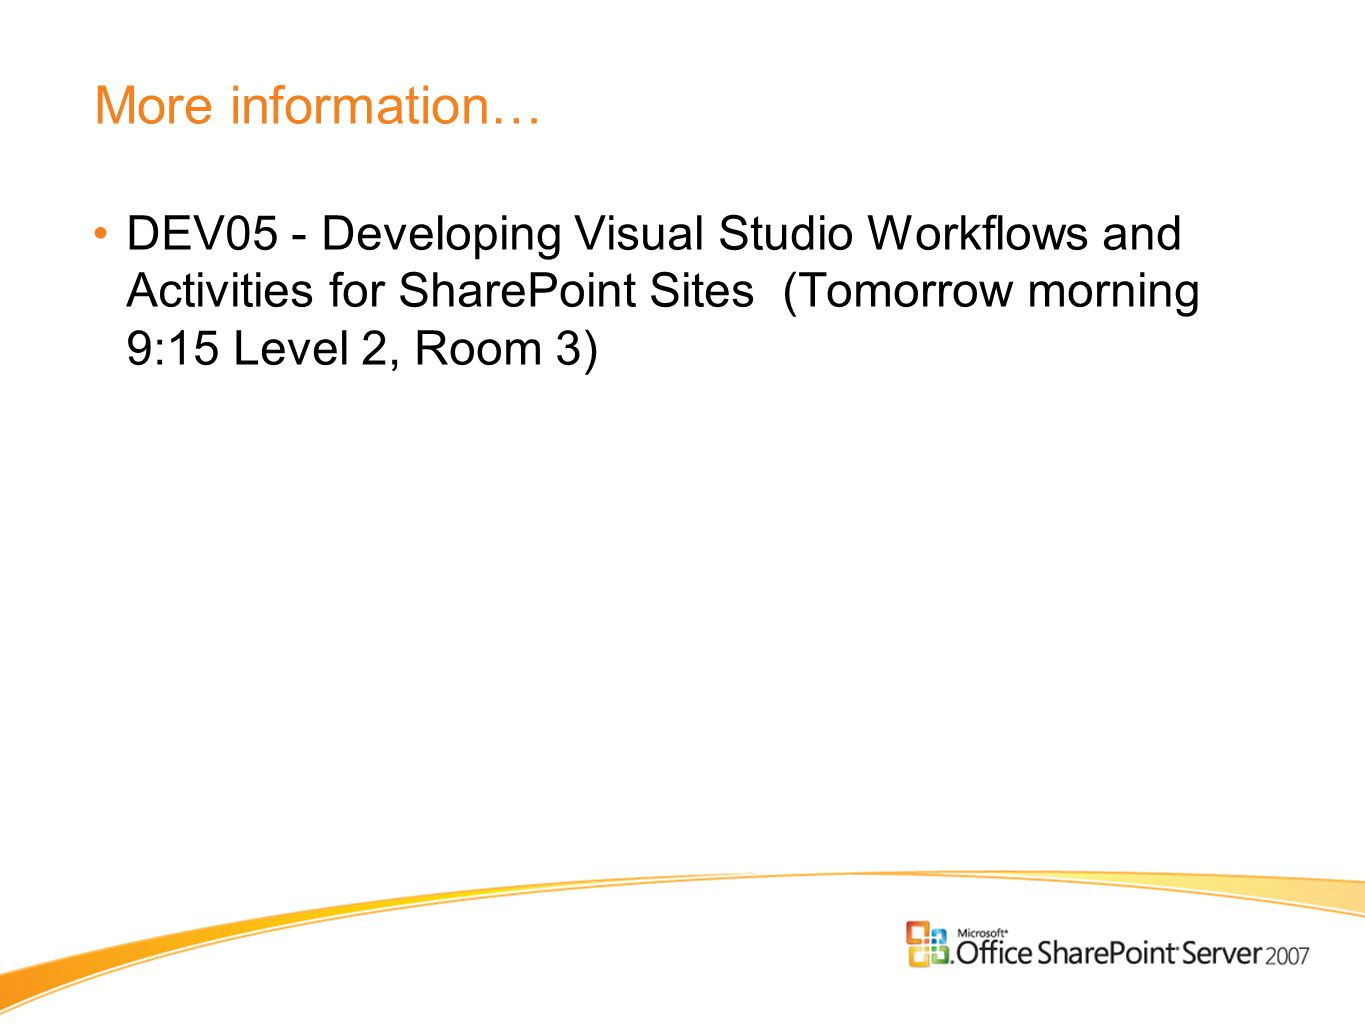 More information… DEV05 - Developing Visual Studio Workflows and Activities for SharePoint Sites (Tomorrow morning 9:15 Level 2, Room 3)